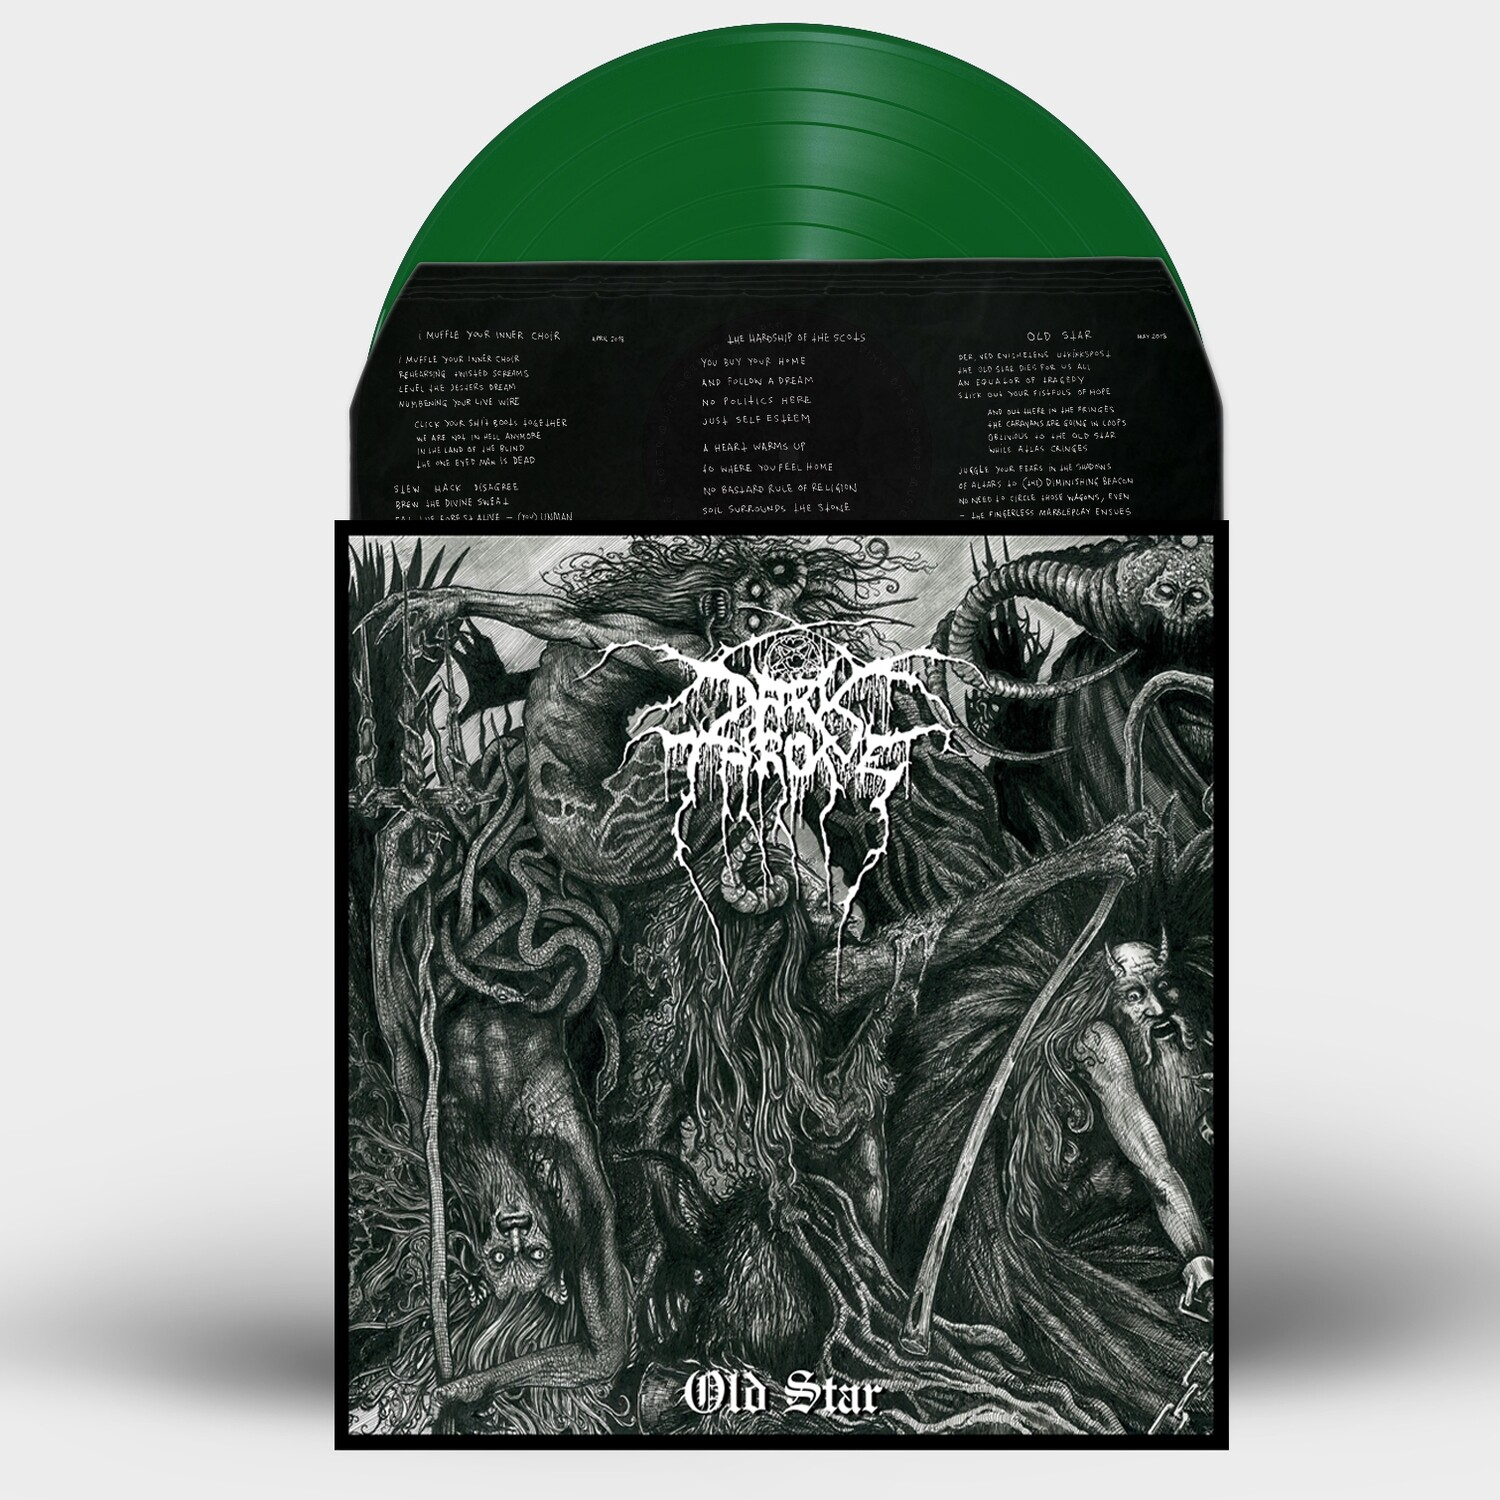 Darkthrone - Old Star - Vinilo Verde (Ed. Limitada)